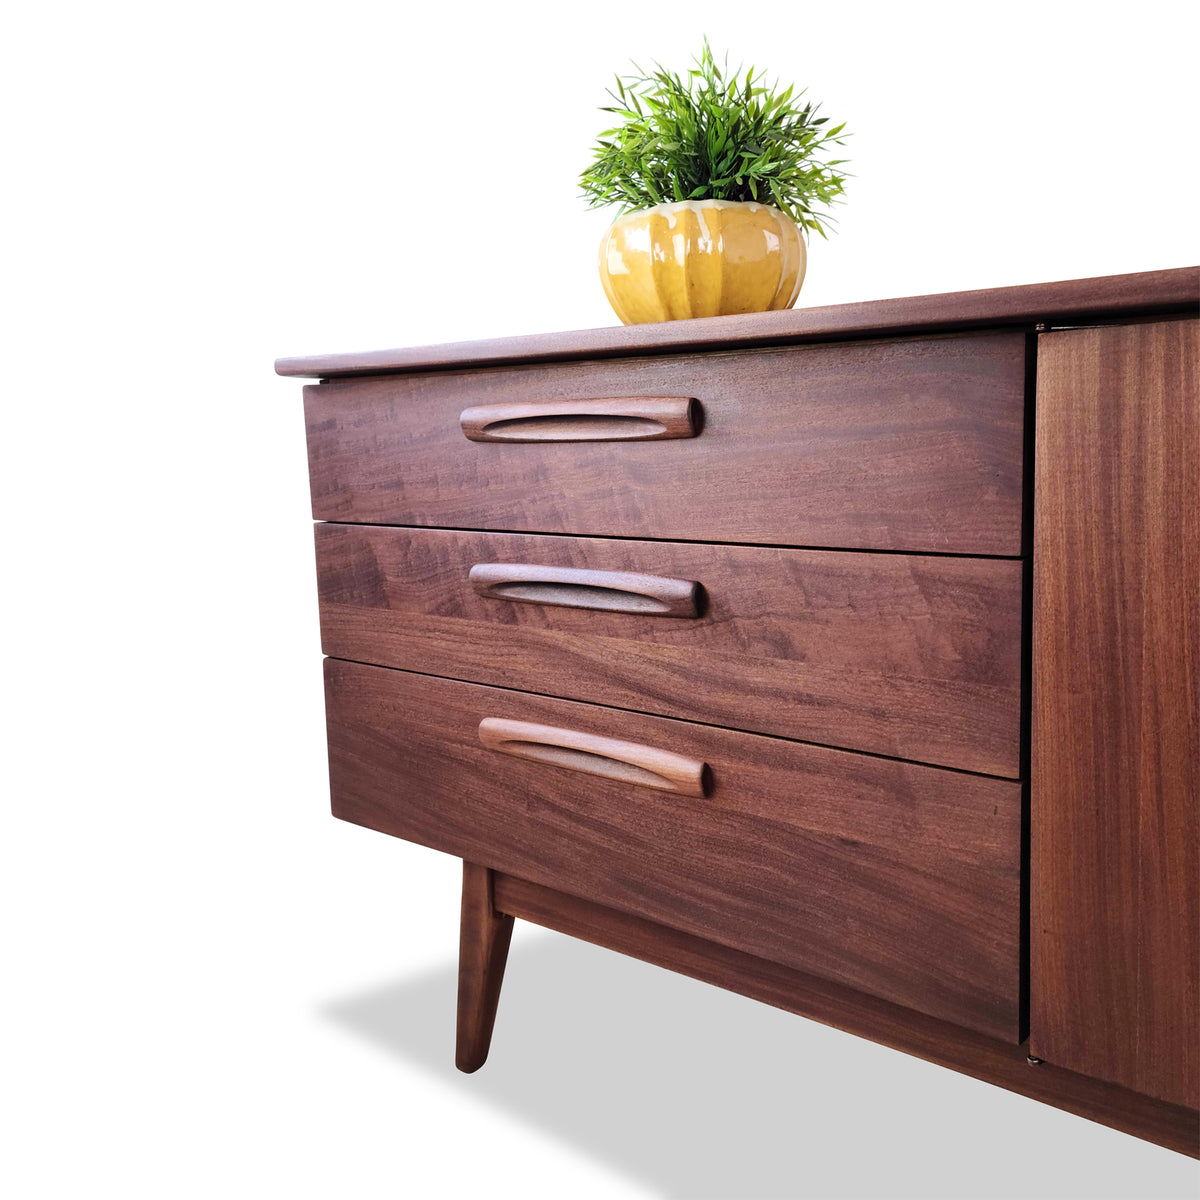 Teak Sideboard by Jan Kuypers for Imperial